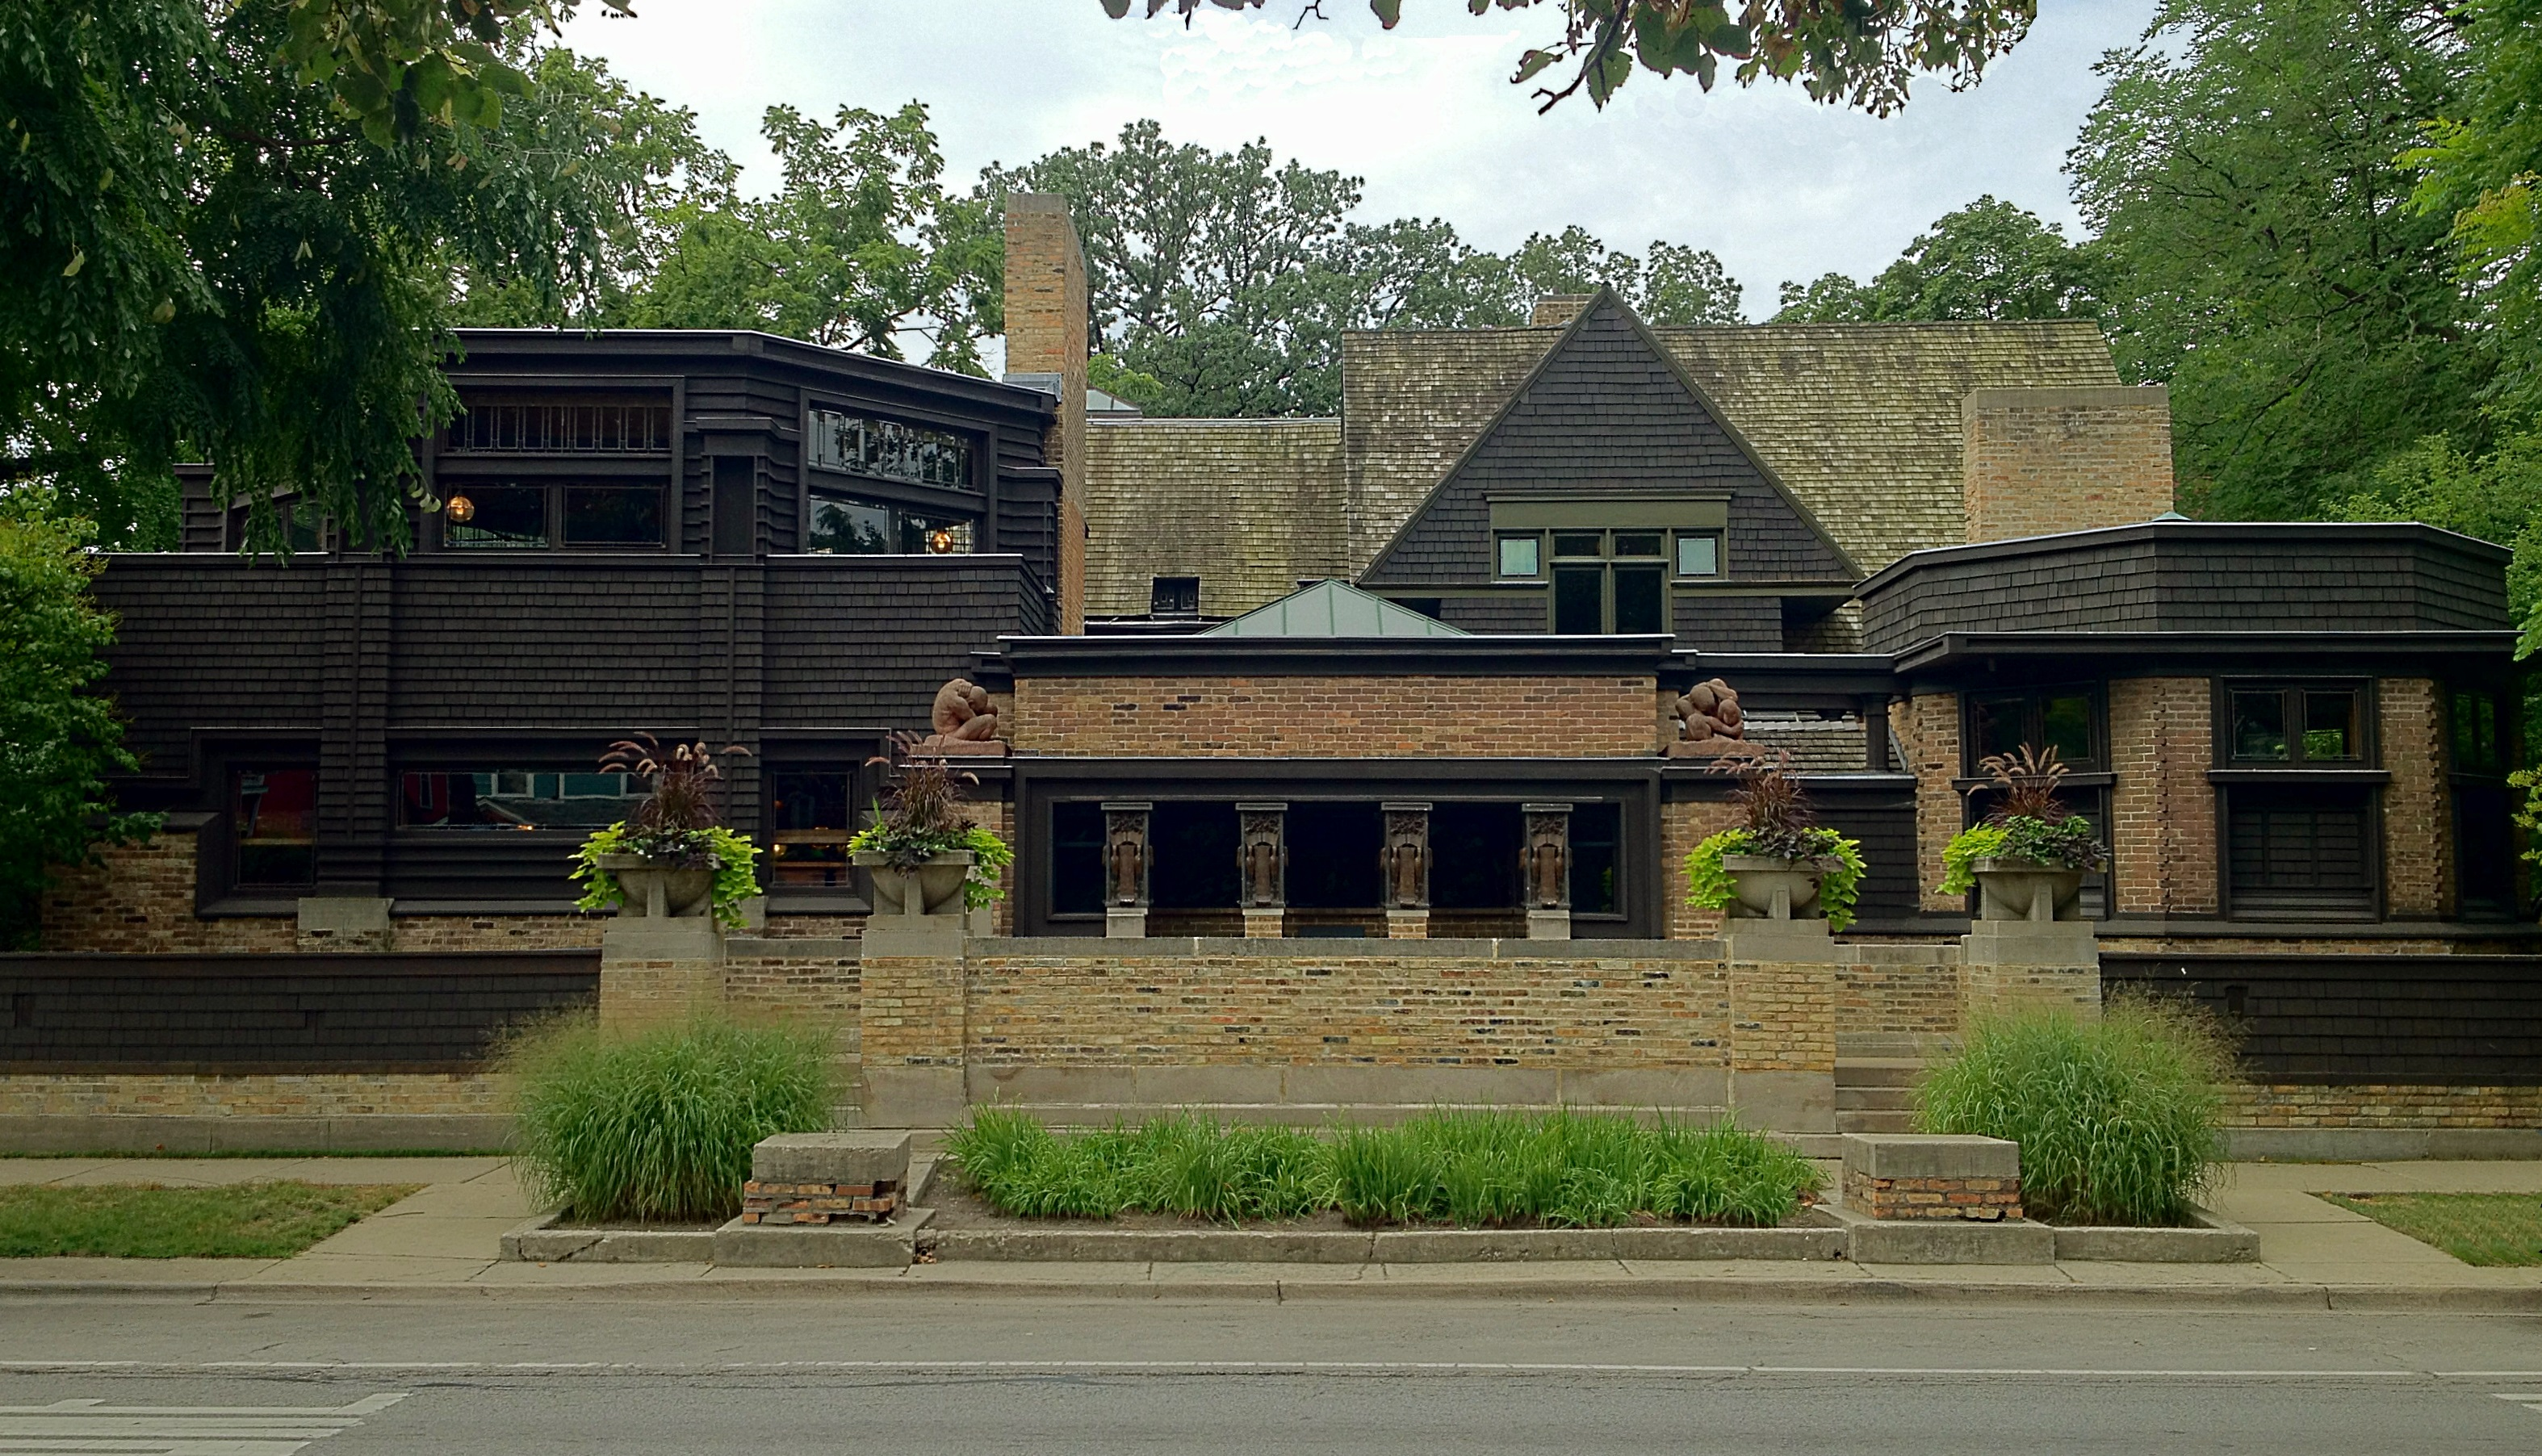 Frank Lloyd Wrights Oak Park Illinois Designs The First